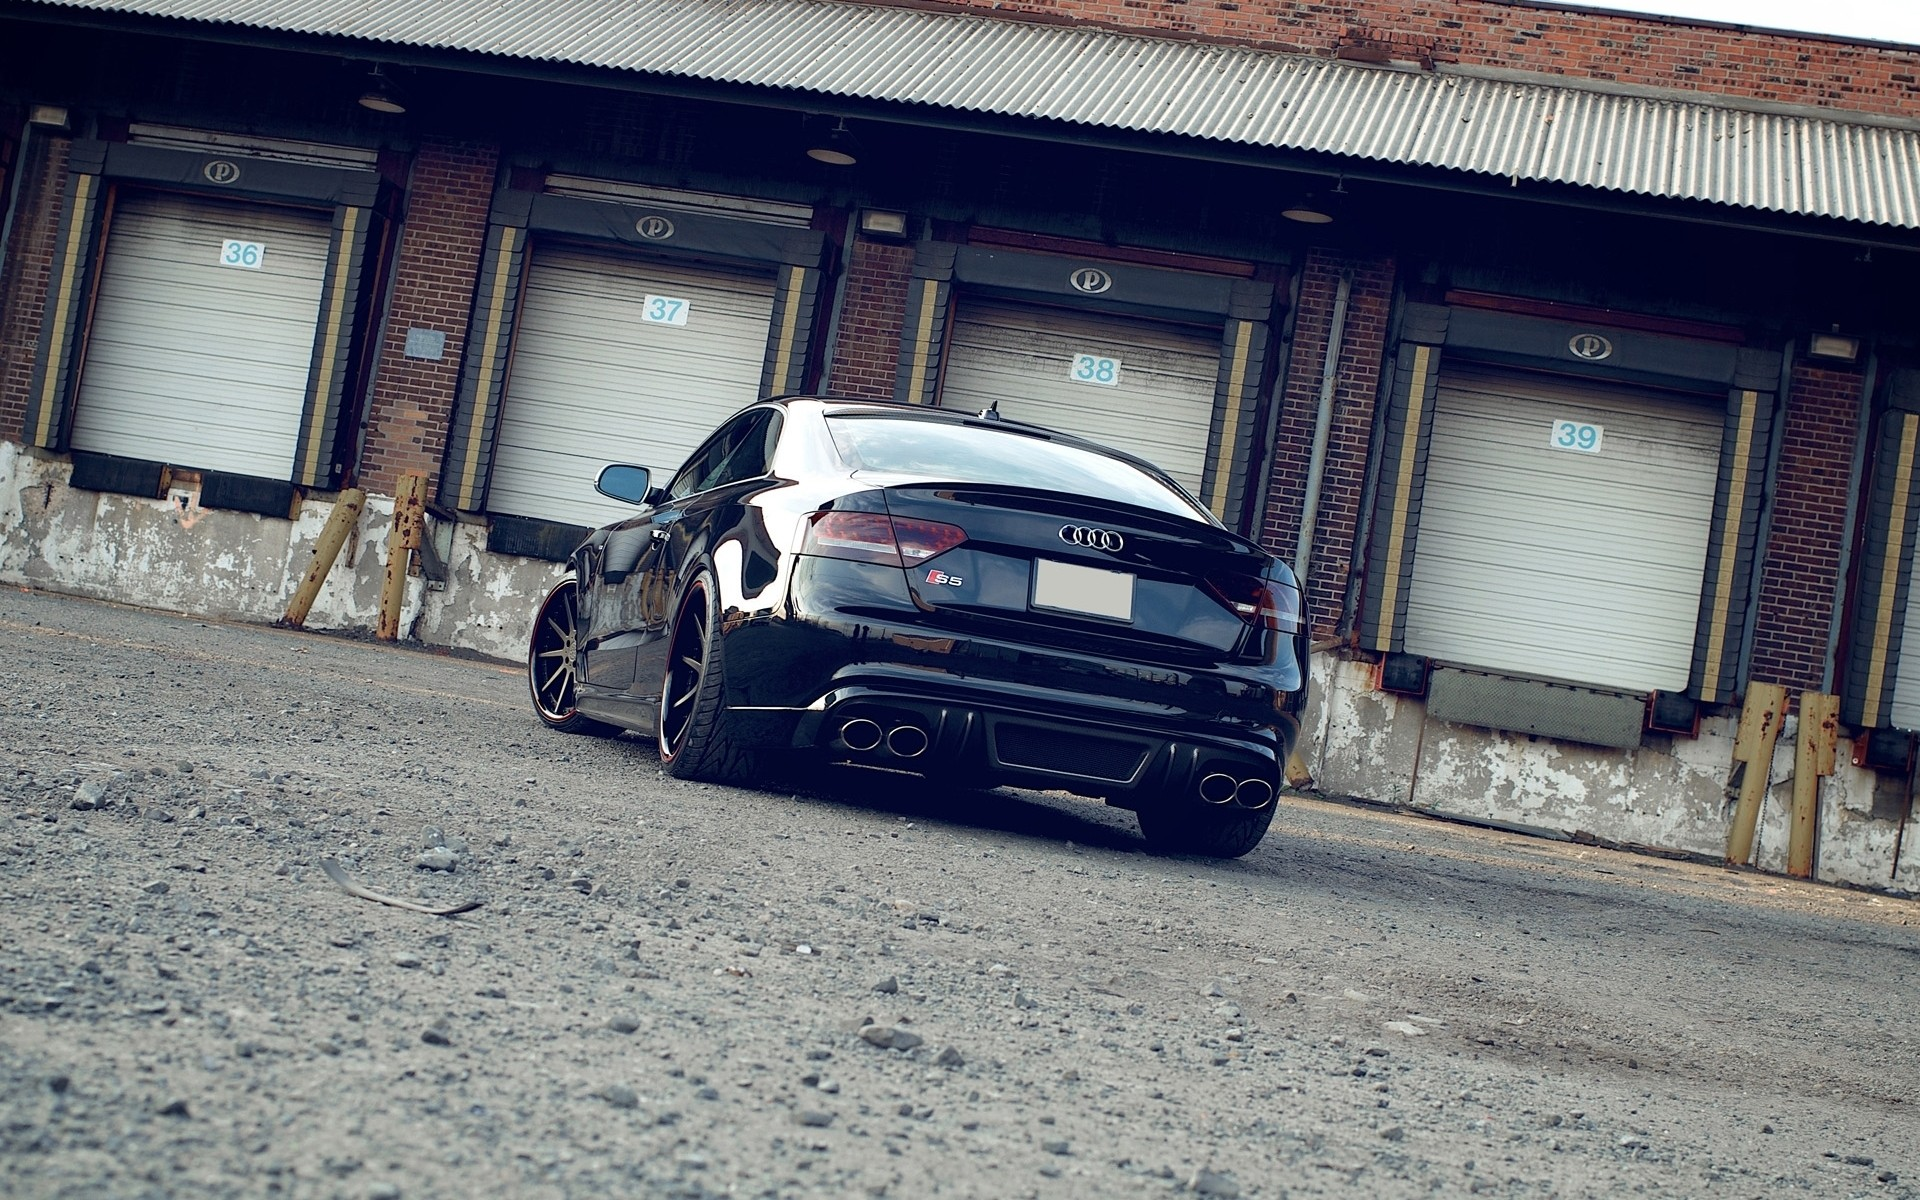 General 1920x1200 sports car car anime Audi S5 Audi vehicle urban